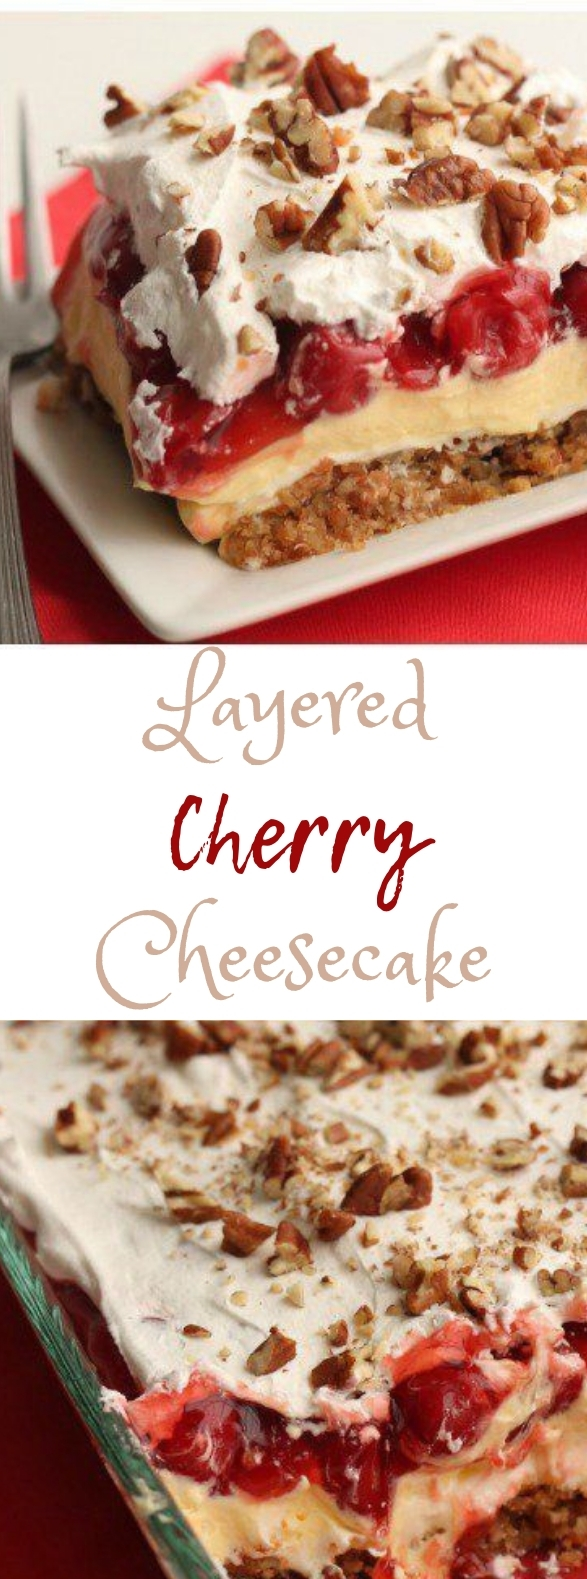 Layered Cherry Cheesecake #cake #dessert